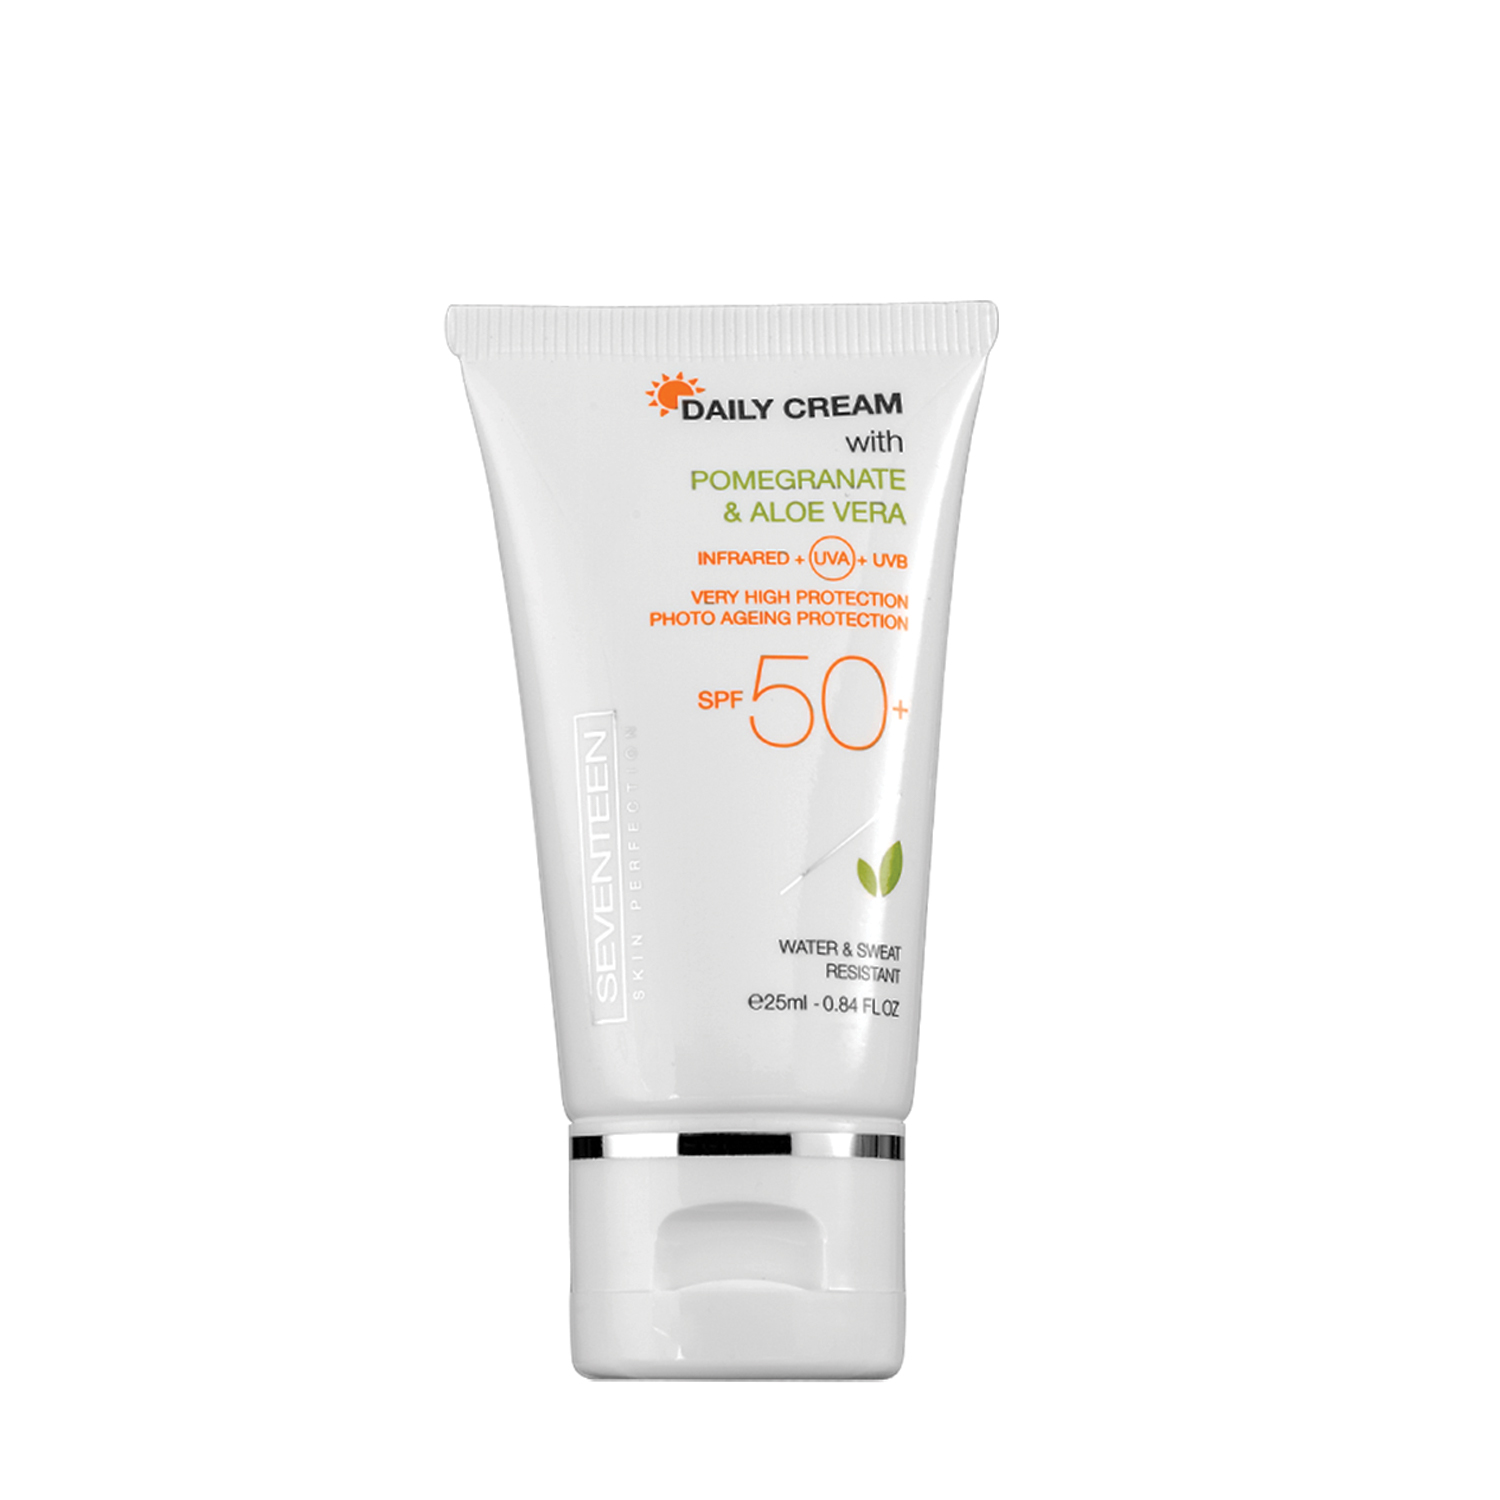 Daily Cream SPF 50+ Travel Size